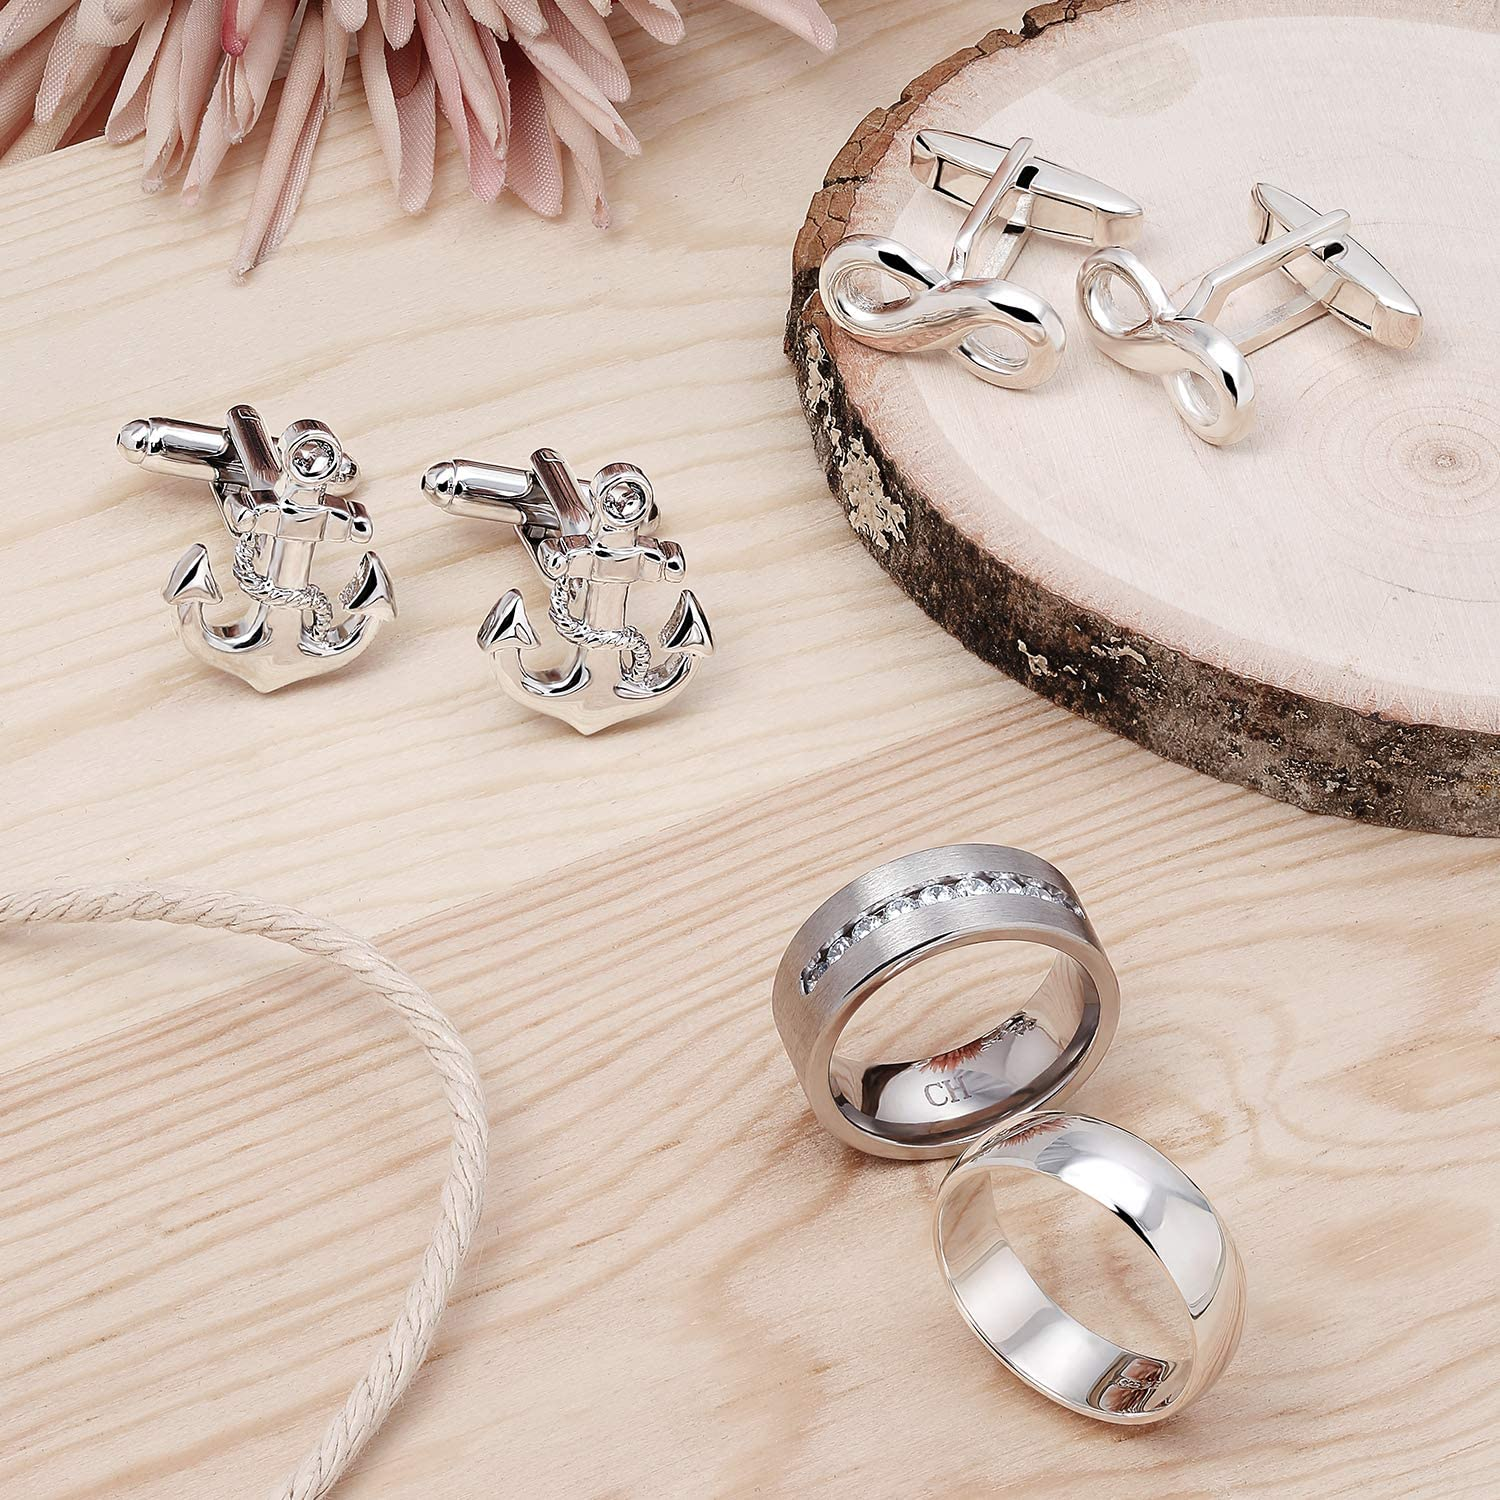 Gifts for the groom. Cufflinks with initials Silver Cufflinks for weddings Cufflinks for the groom Cufflinks with Infinite